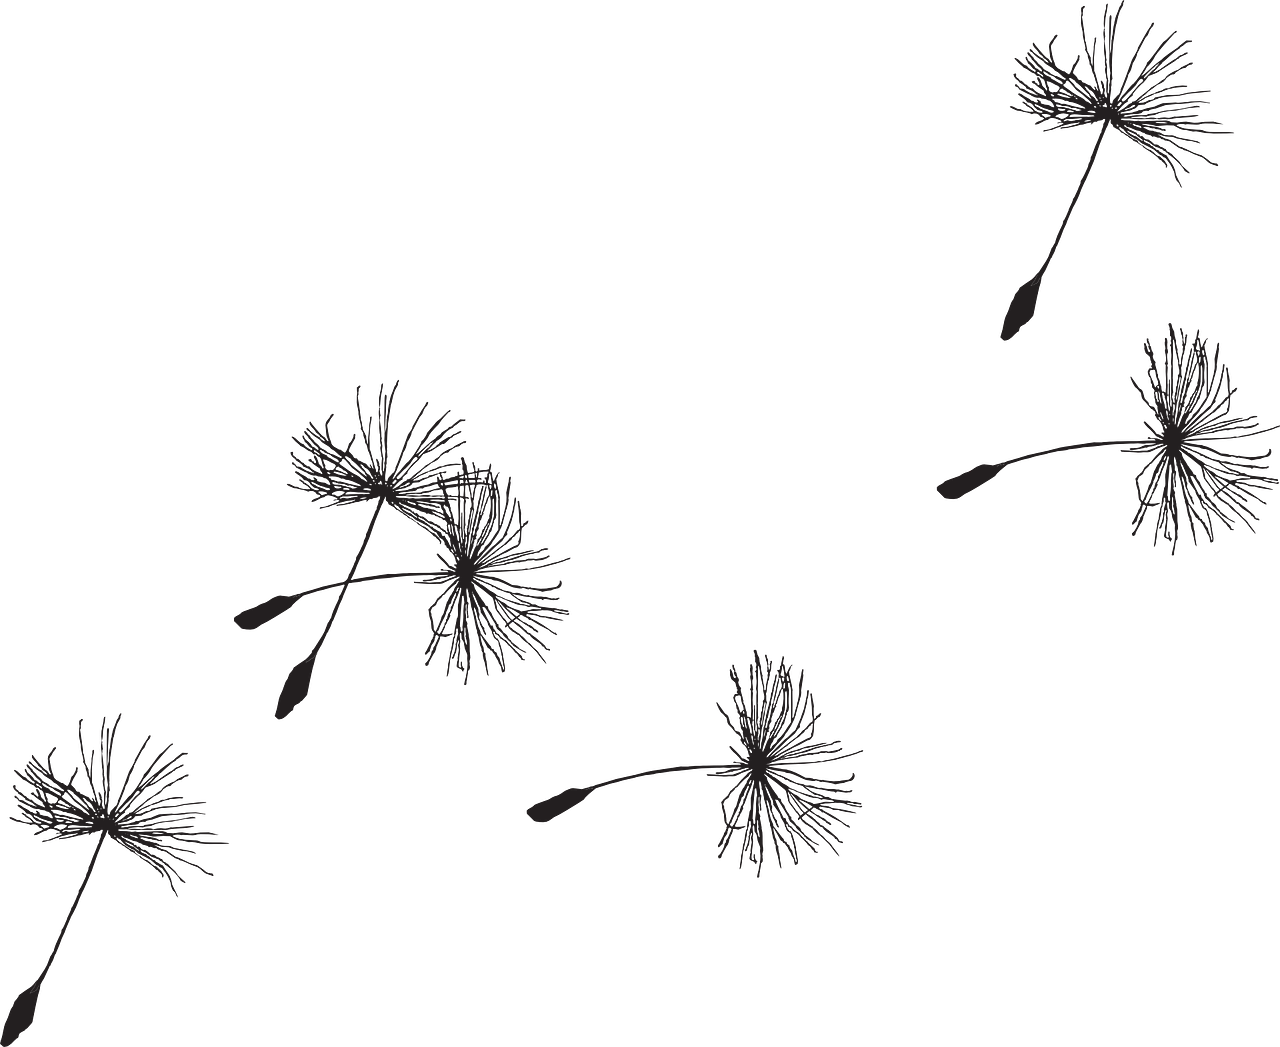 Blowing dandelion png. Free image on pixabay